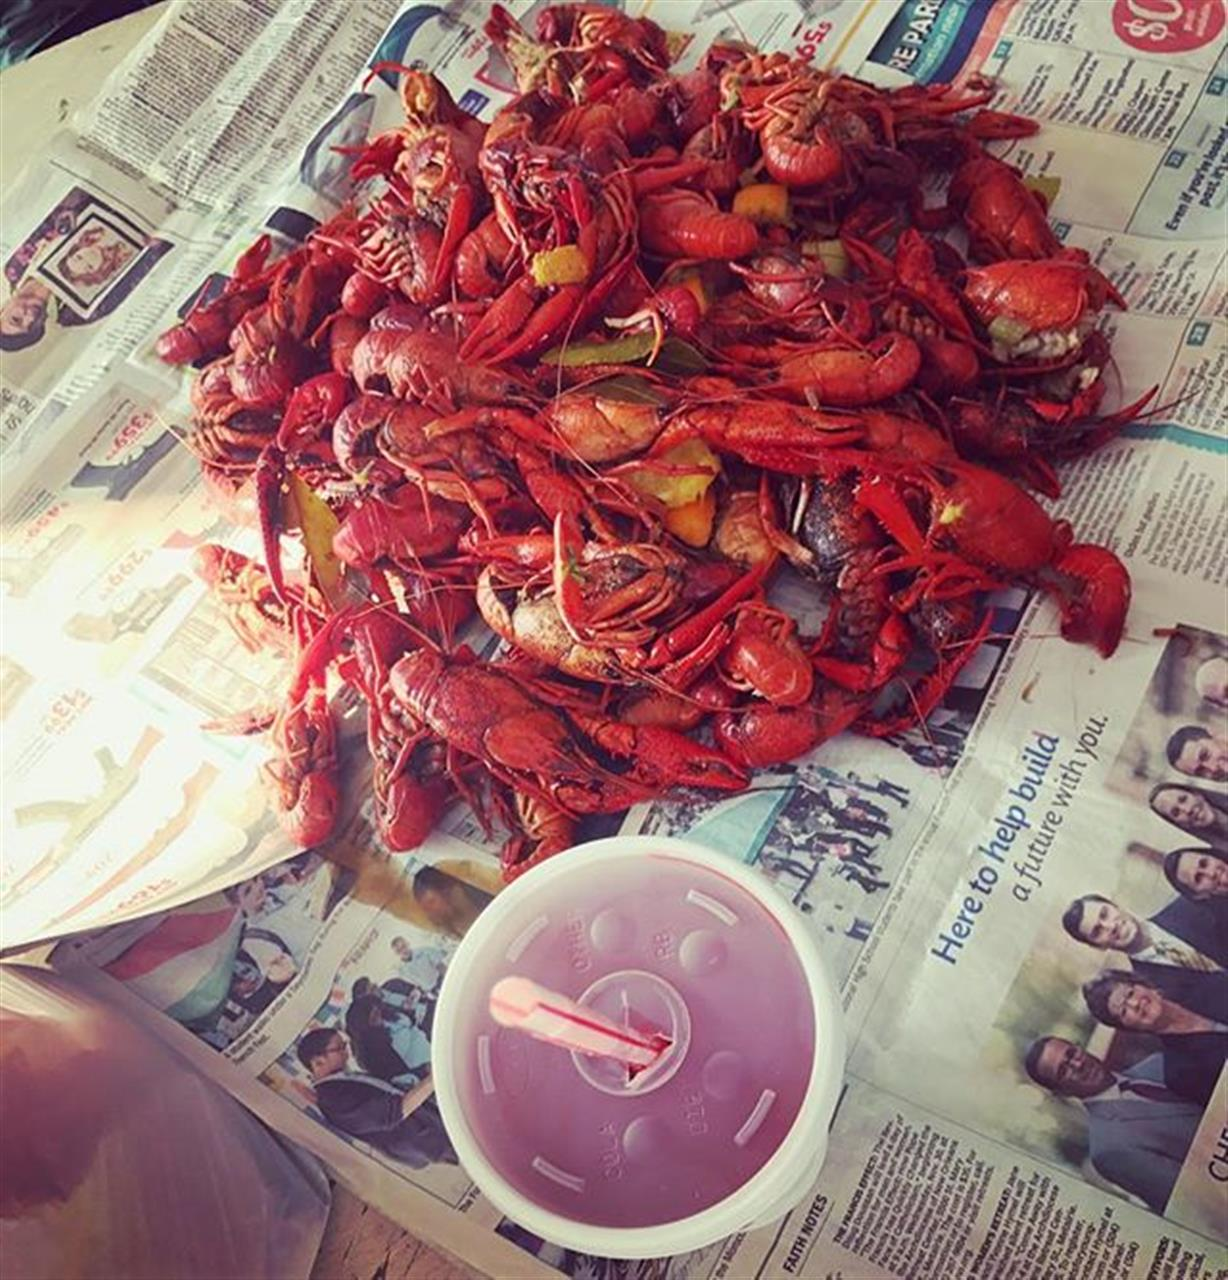 Check out the blog for our new favorite way to find crawfish in NOLA: the Crawfish App! (link in bio)